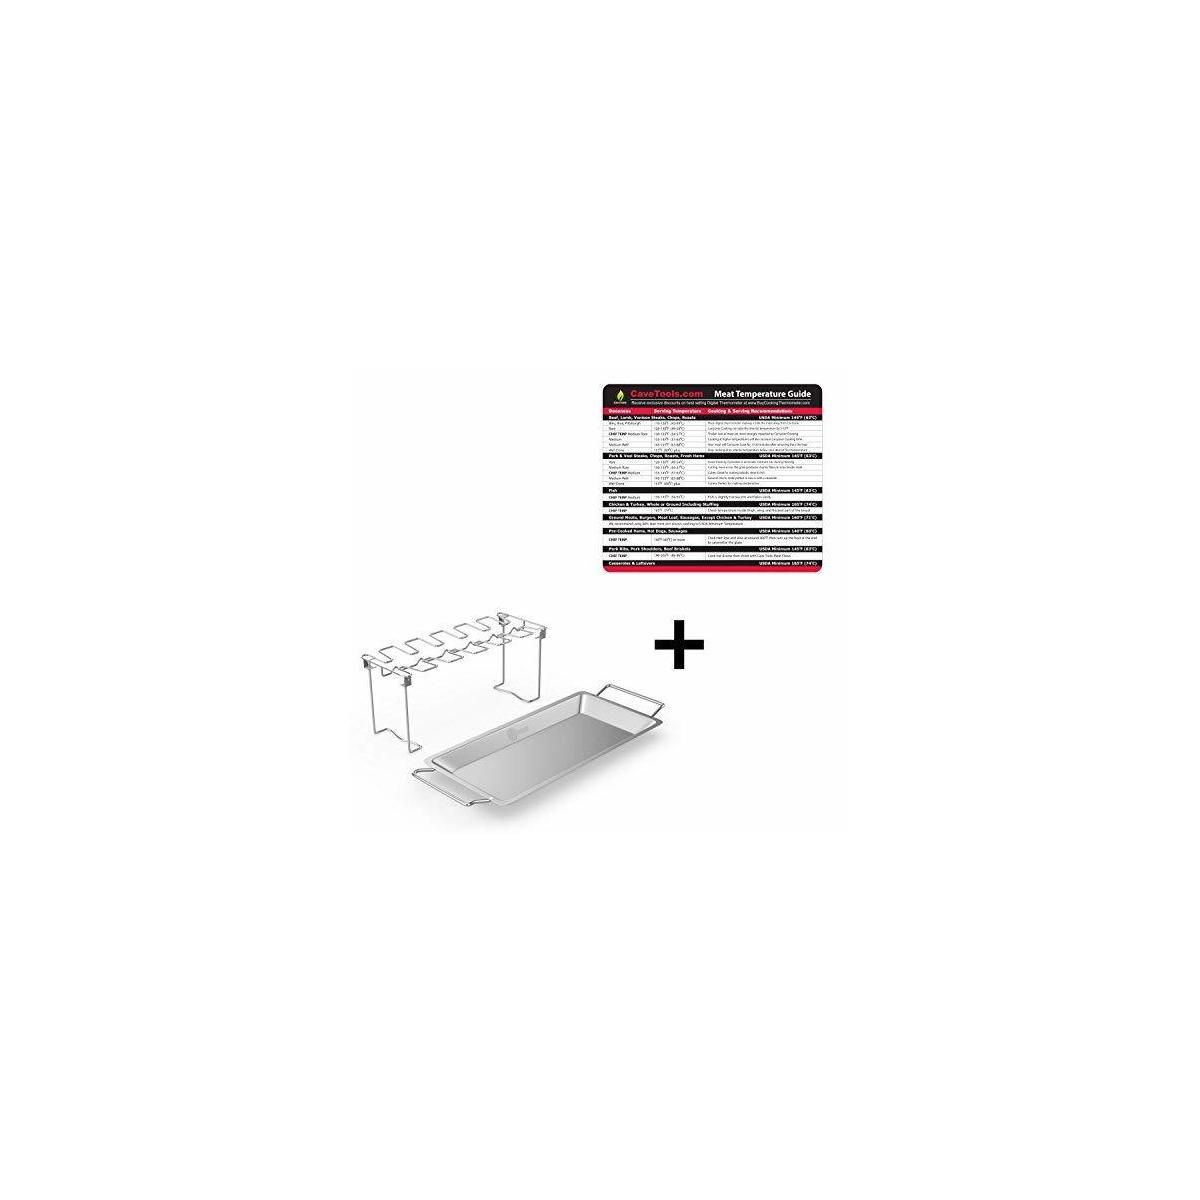 Temperature Magnet (lg) + Chicken Wing & Leg Rack For Grill Smoker or Oven - Stainless Steel Vertical Roaster & Drip Pan For Cooking Vegetables In BBQ Juices - Dishwasher Safe Barbecue Accessories